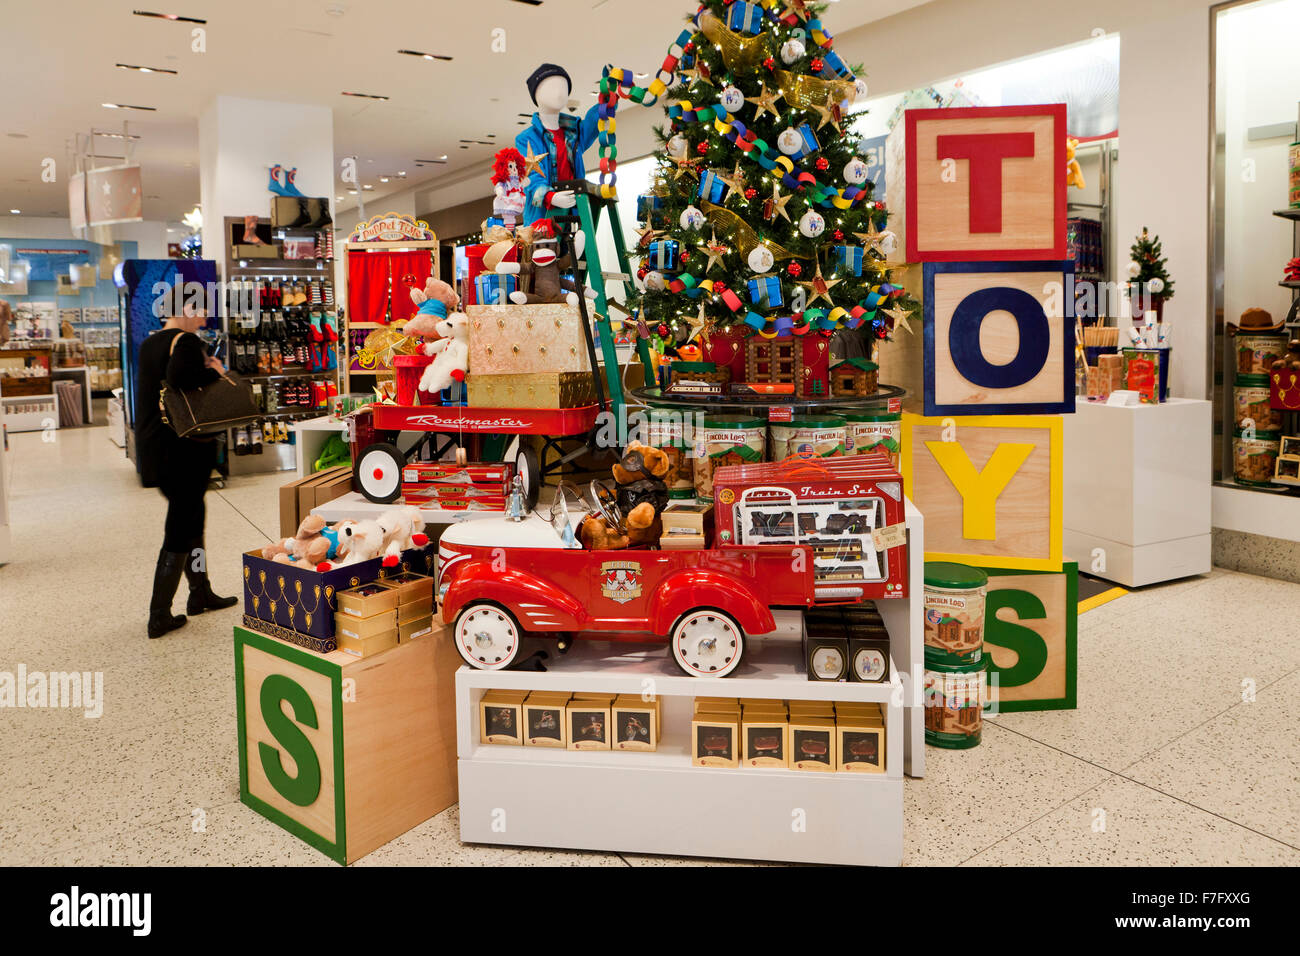 Christmas Toys Display At Shopping Center Usa Stock Photo